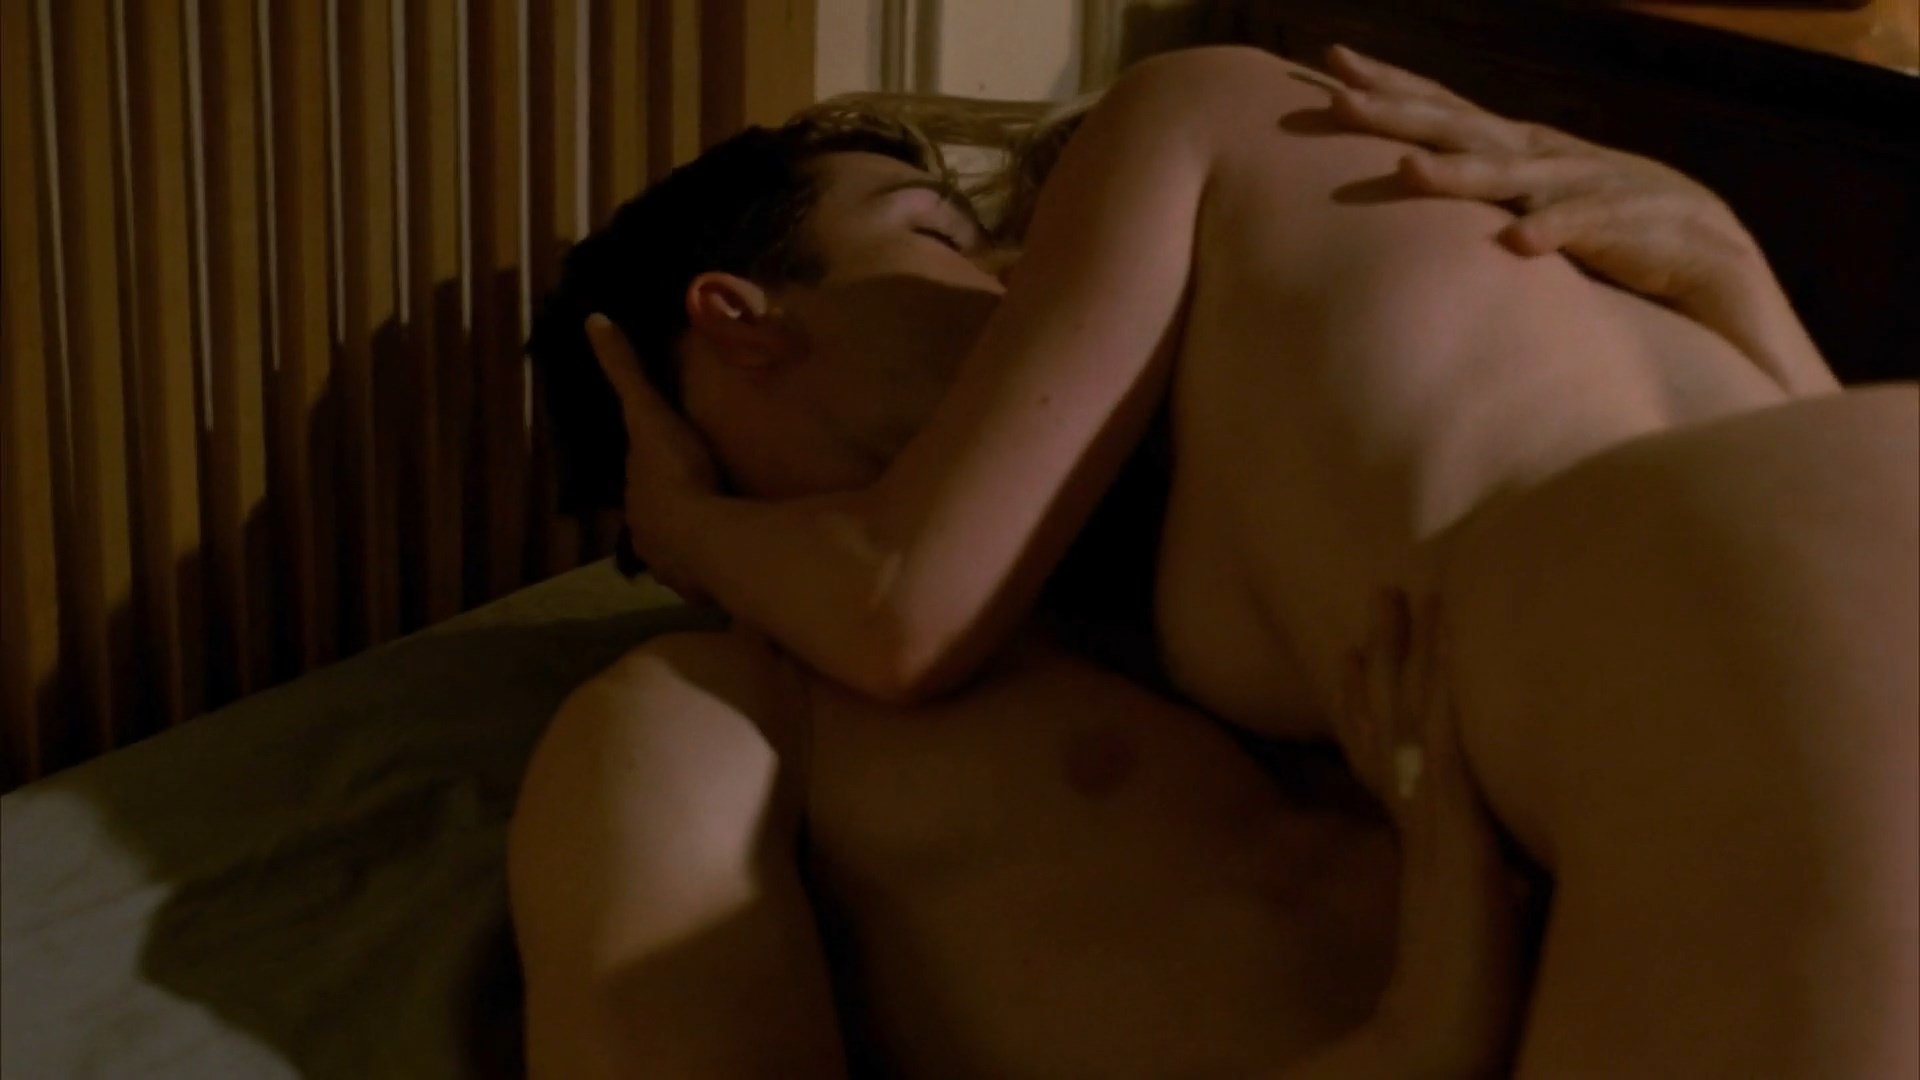 Chandra West nude - NYPD Blue s10-11 (2003)